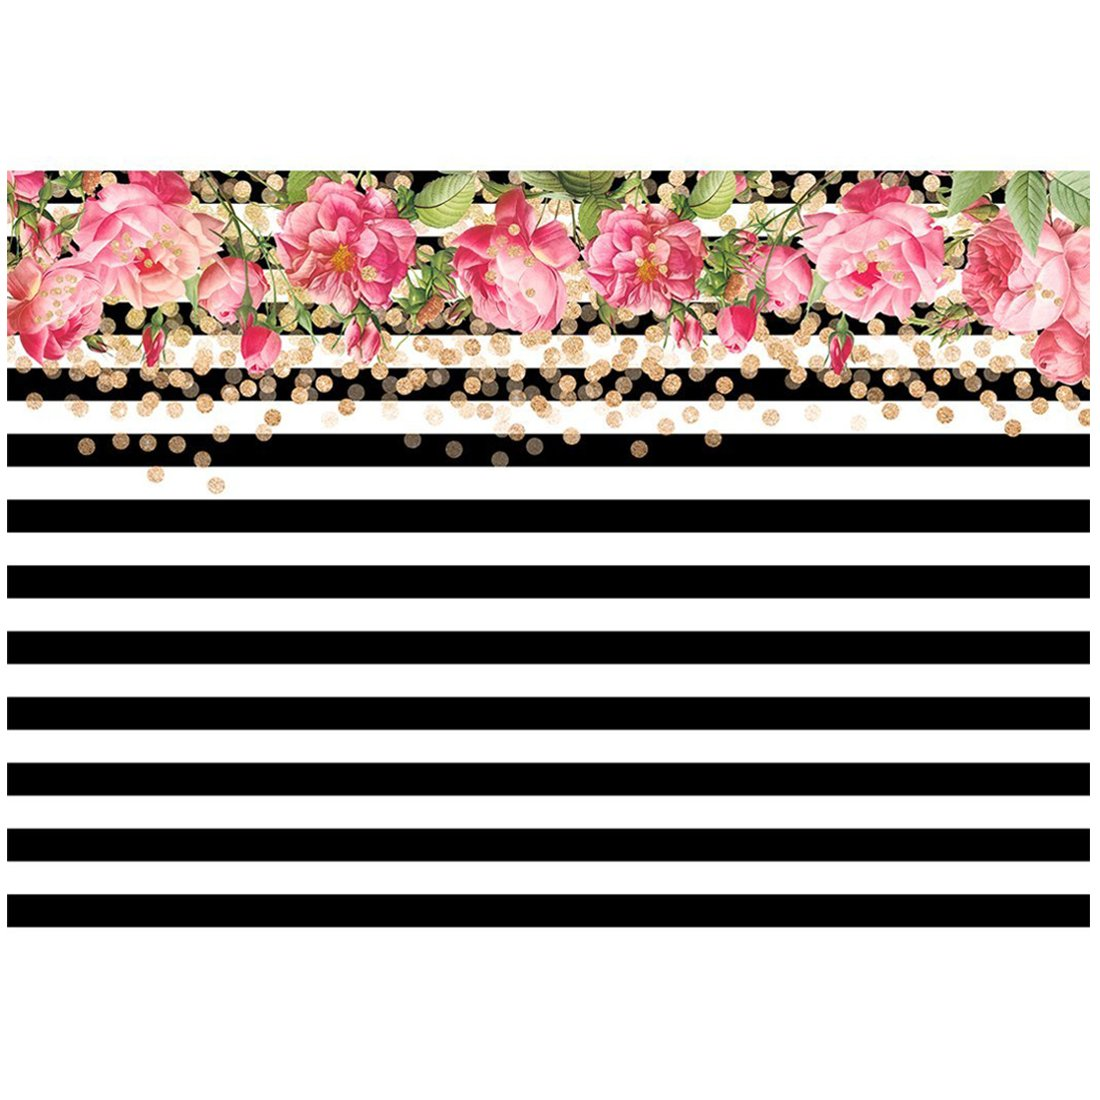 Toogoor 7x5ft photography backdrops black and white stripe watercolor pink flower banner birthday party wedding bridal shower decoration photo studio